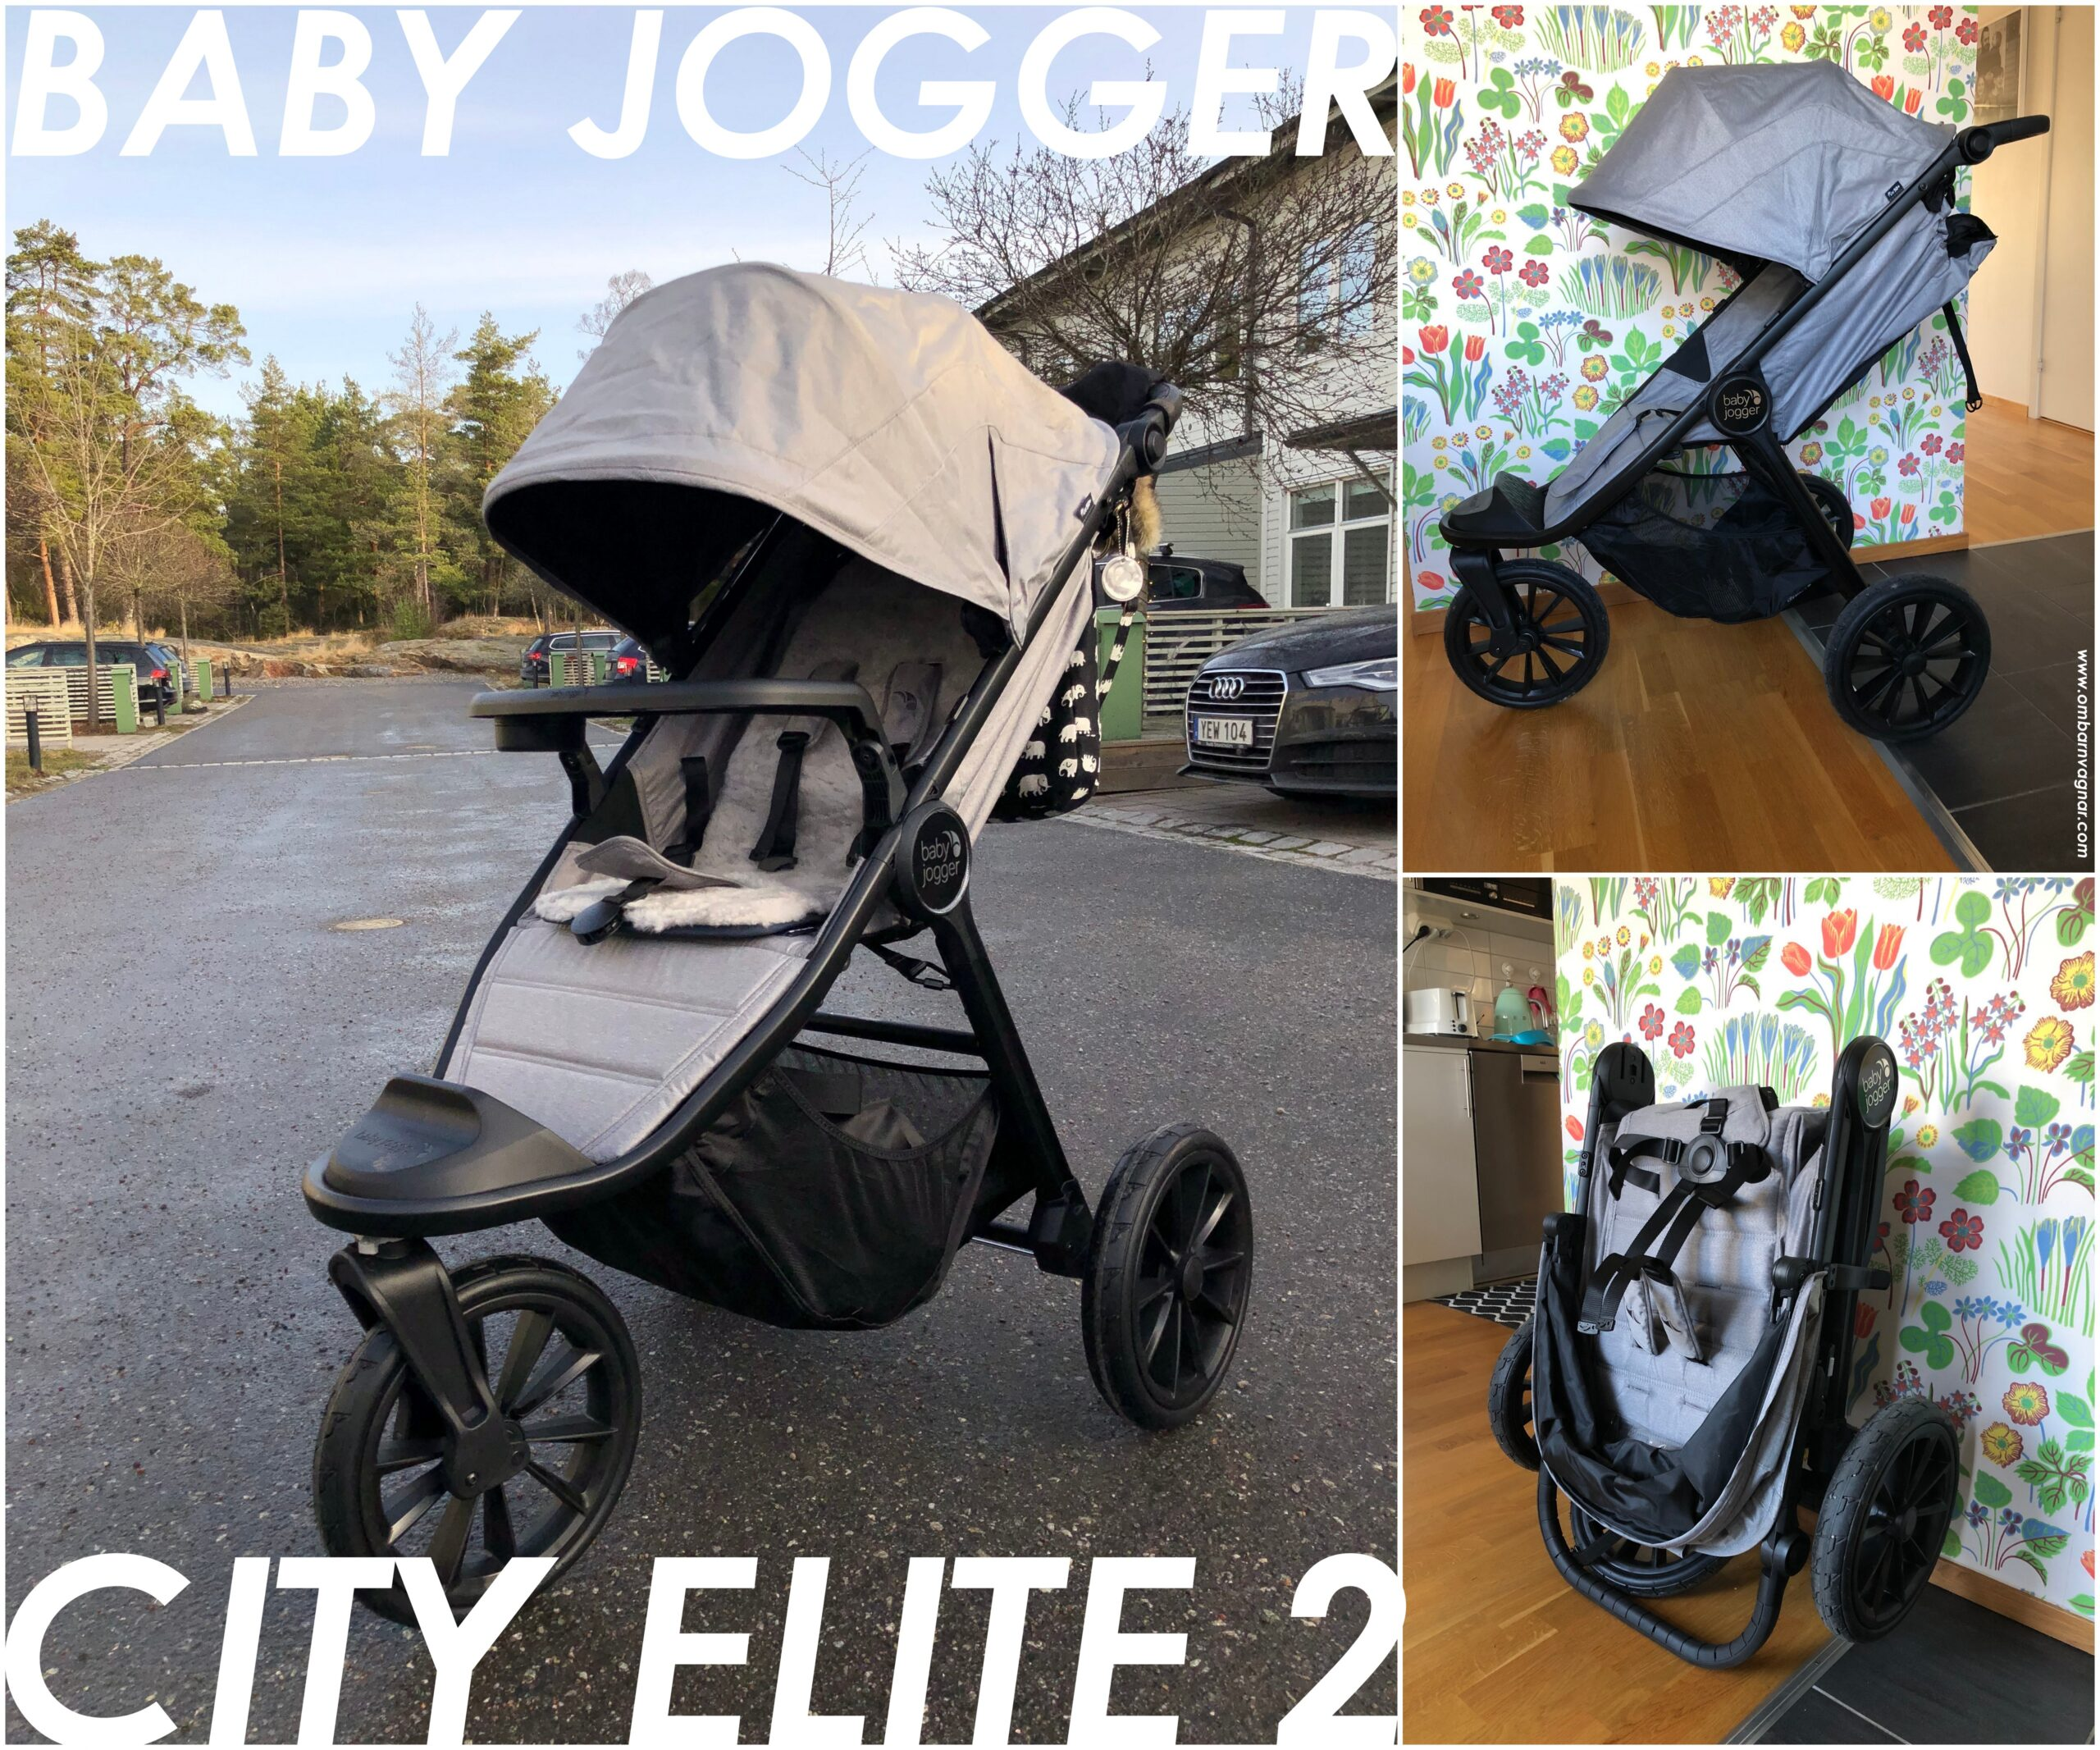 Recension av Baby Jogger City Elite 2